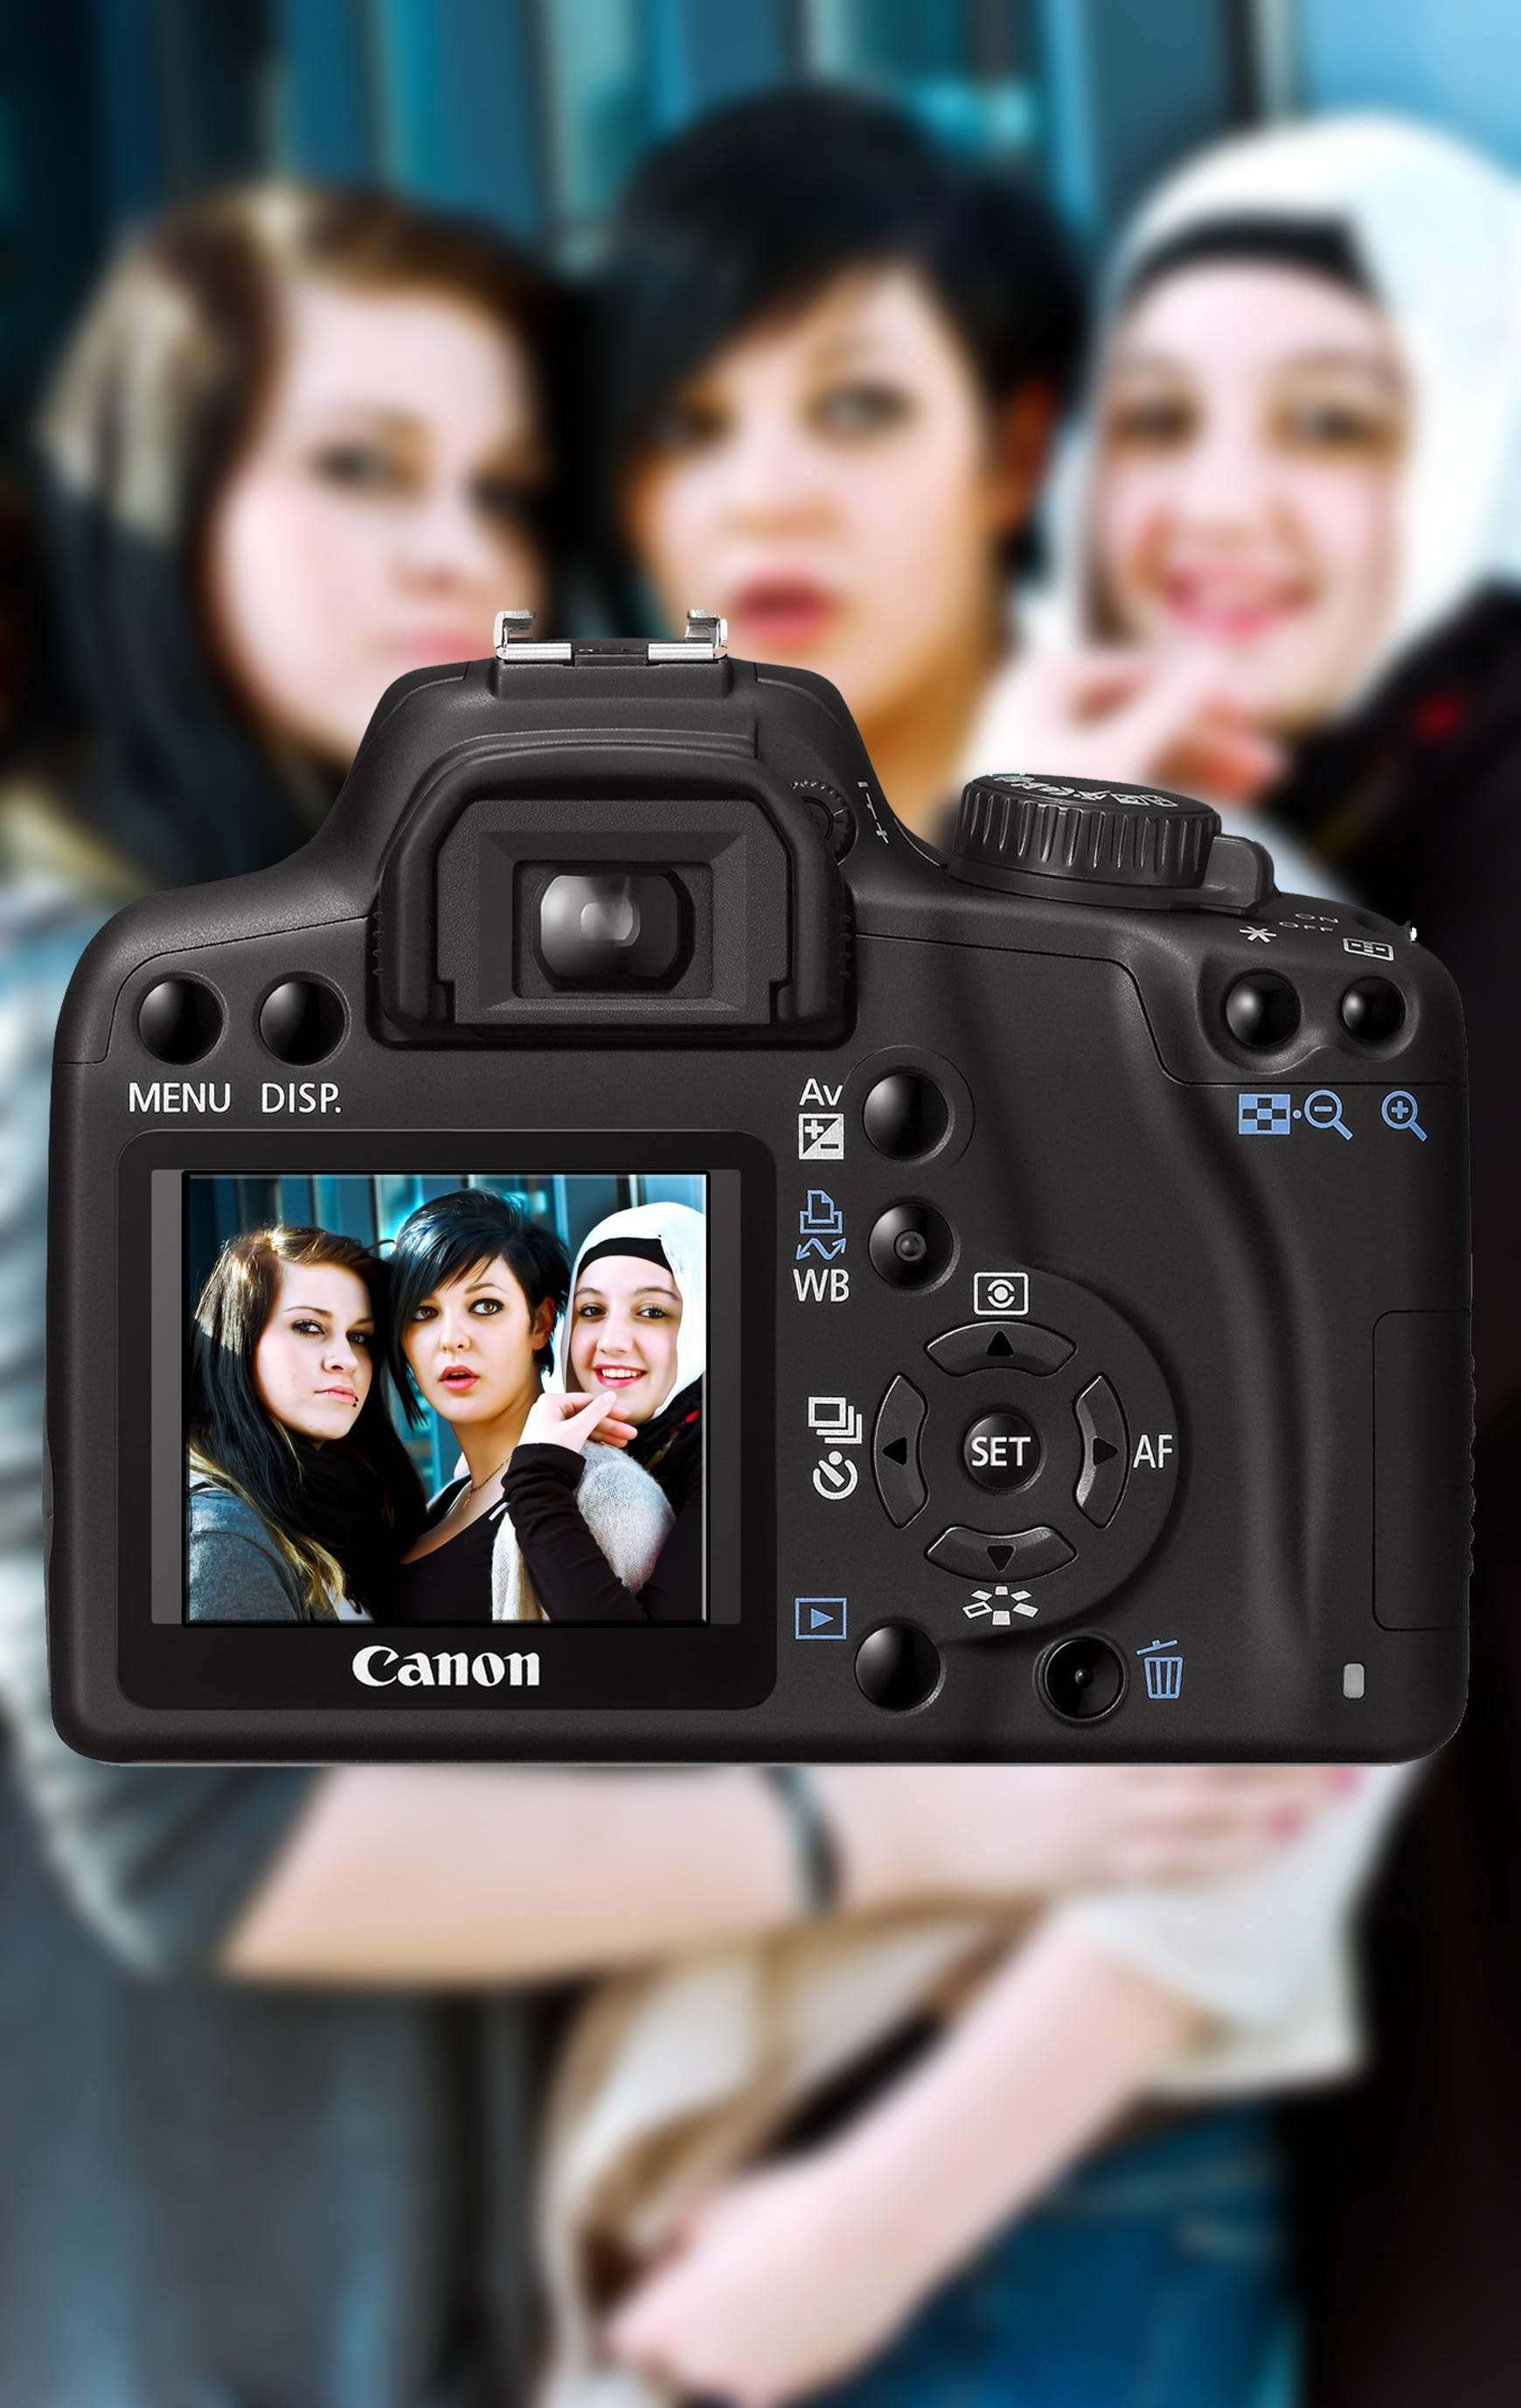 3 Women Caught on Dslr Camera